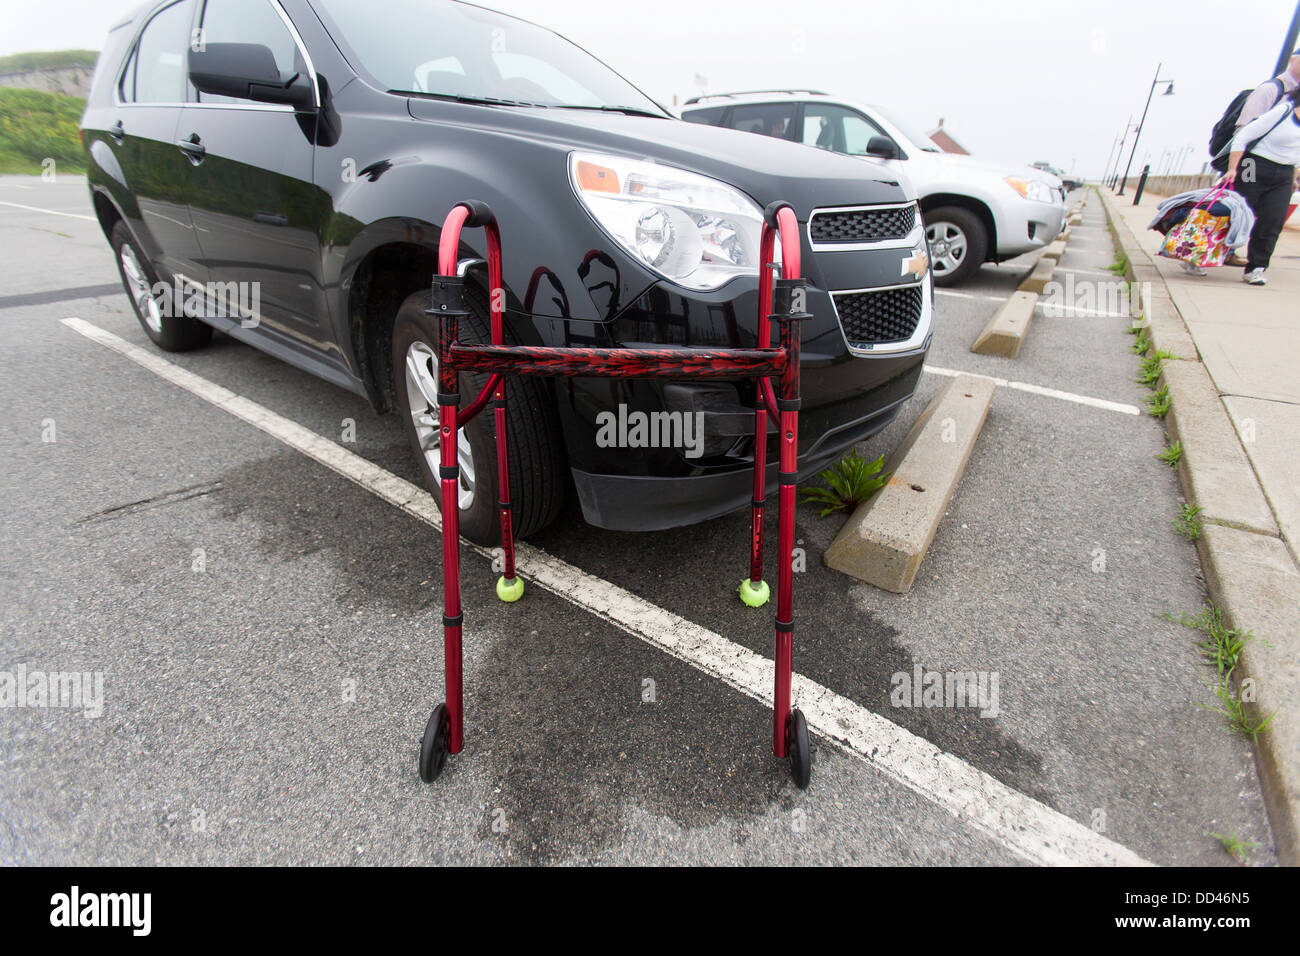 A zimmer frame walker walking aid in a parking lot at a disabled ...